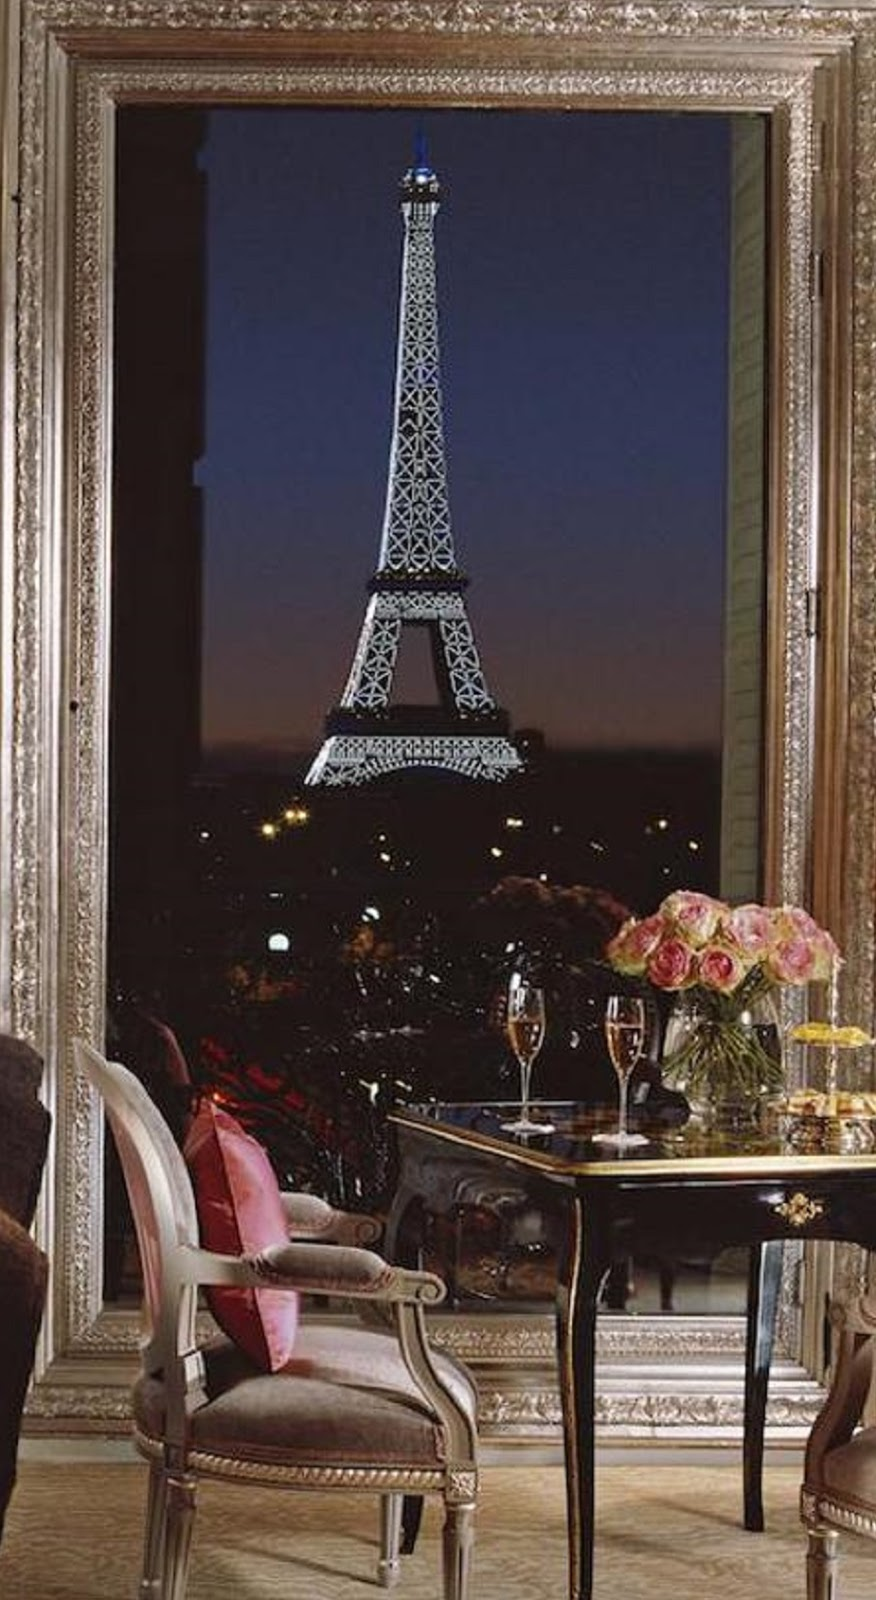 3 paris hotels with eiffel tower view travel daisy for Hotel near eiffel tower paris